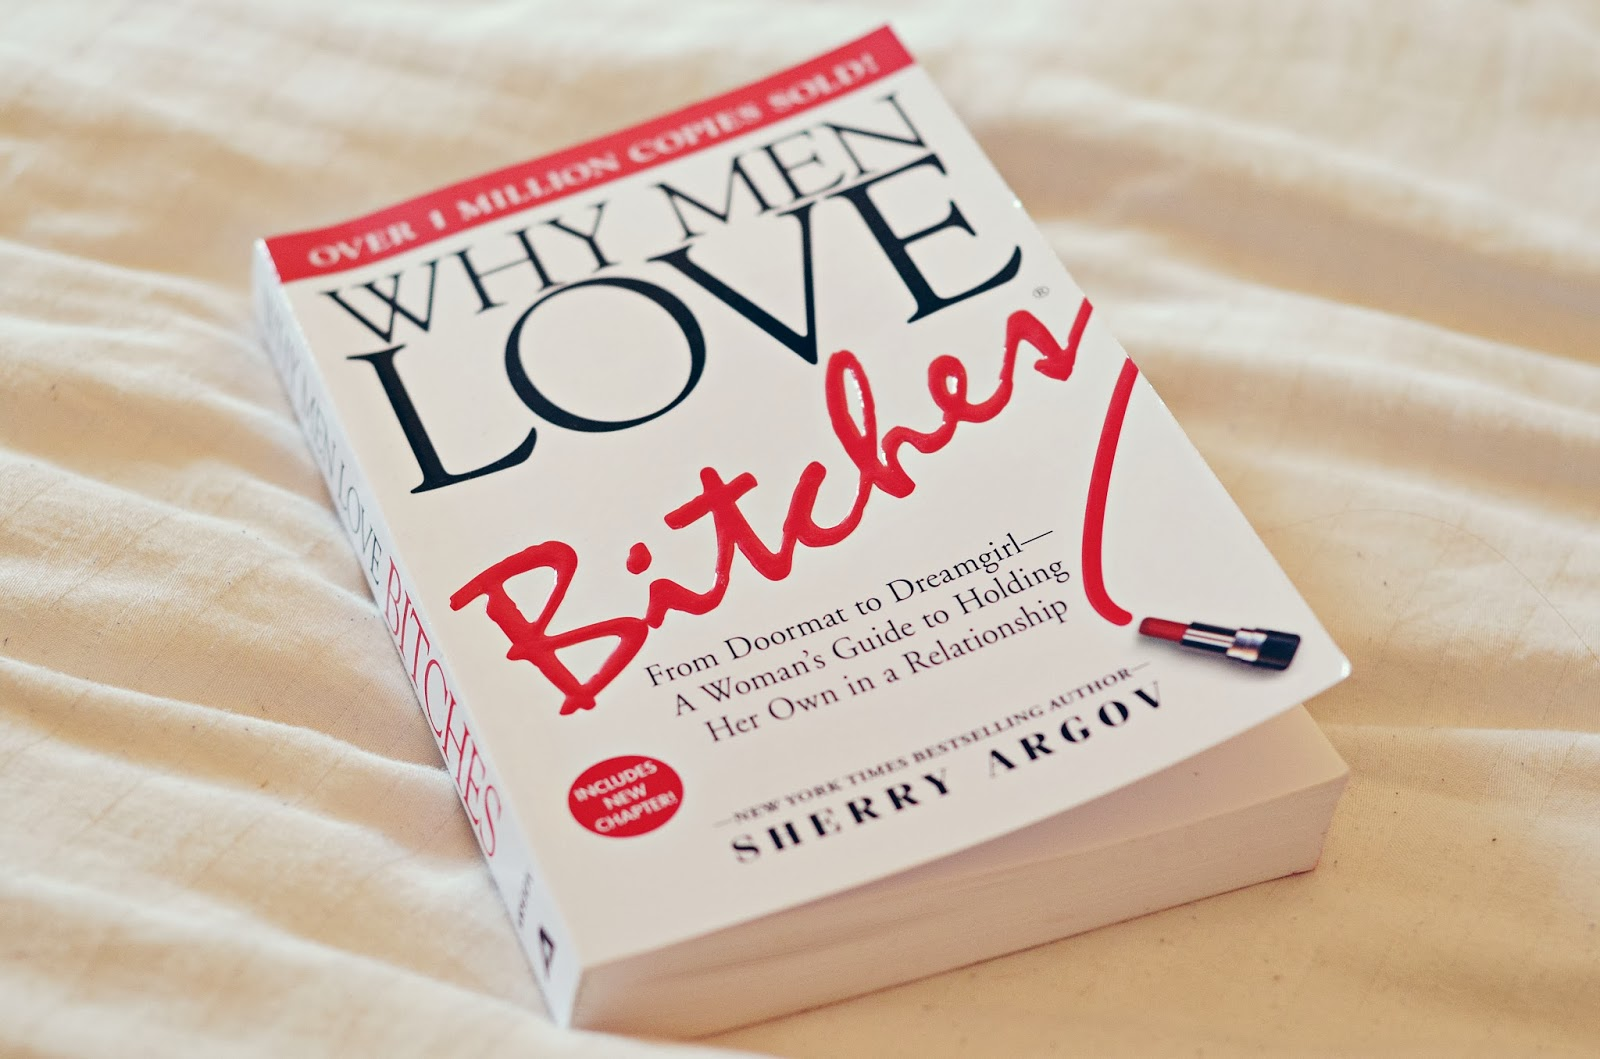 why men love bitches book review Sherry argov, why men love bitches: from doormat to dreamgirl - a woman's guide to holding her own in a relationship, in a nutshell: stop being the traditional nice girl, ie, bending over backwards for a man, ' jumping through hoops .